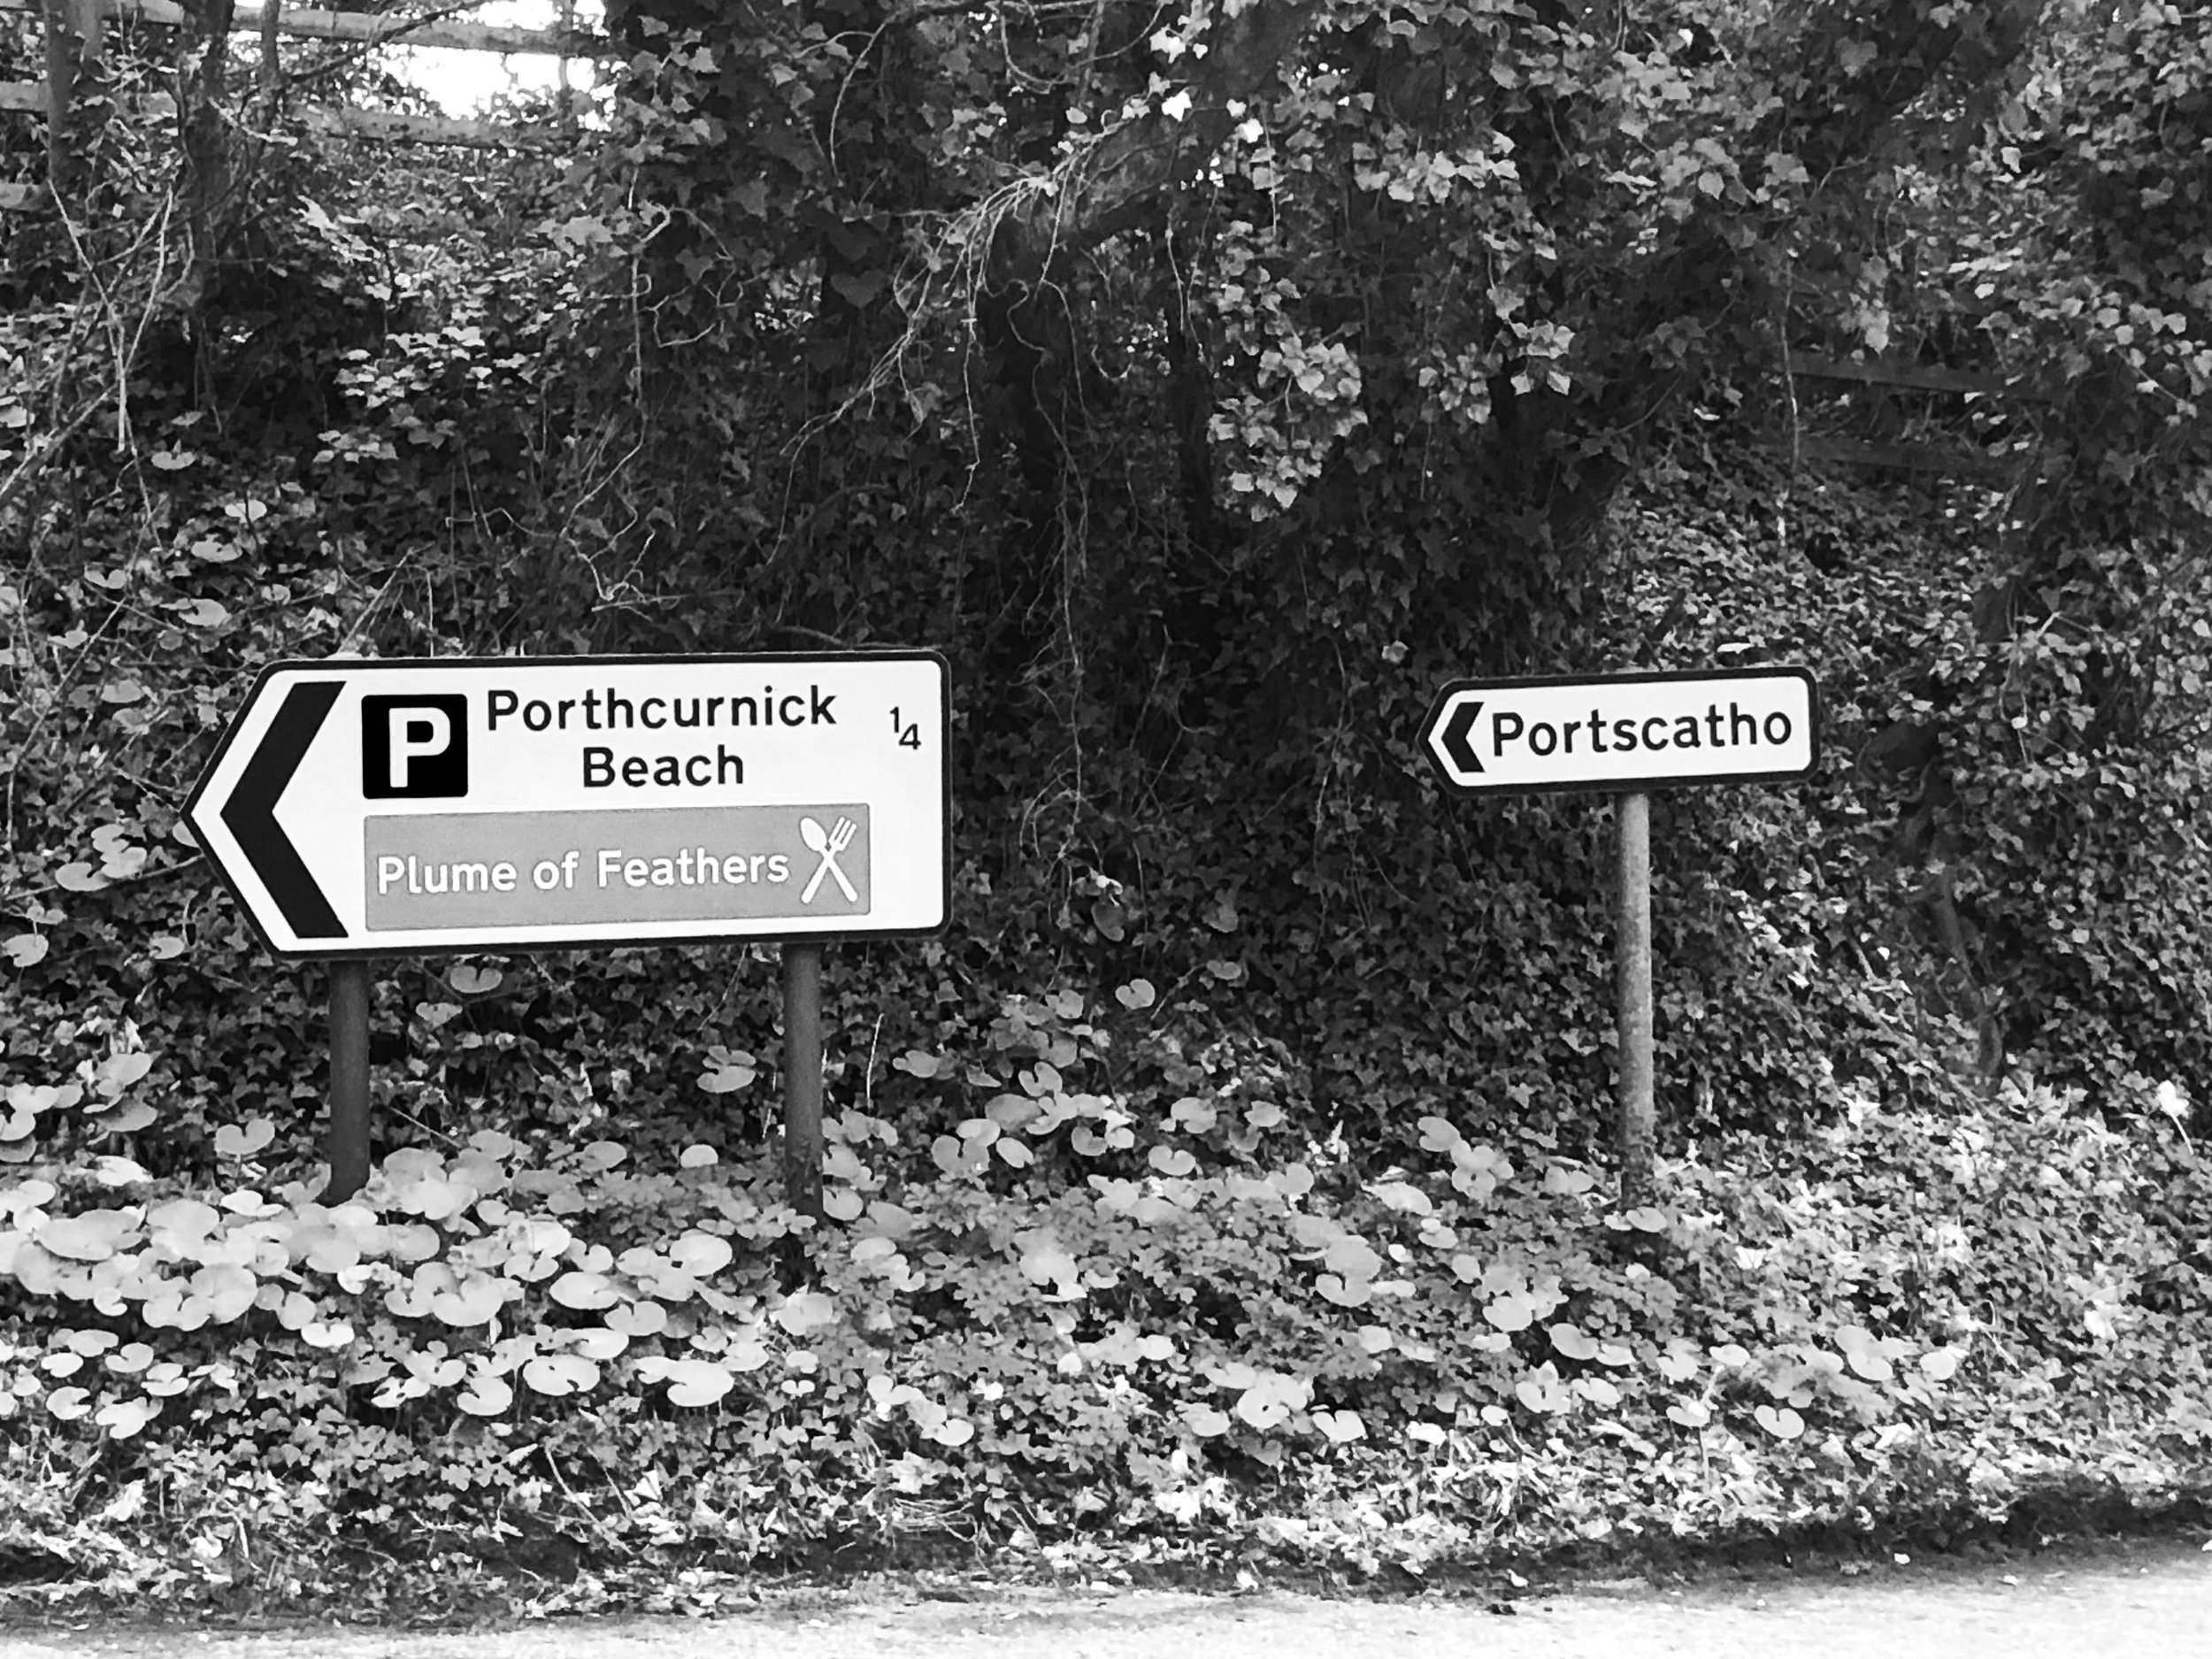 sign post to portscatho